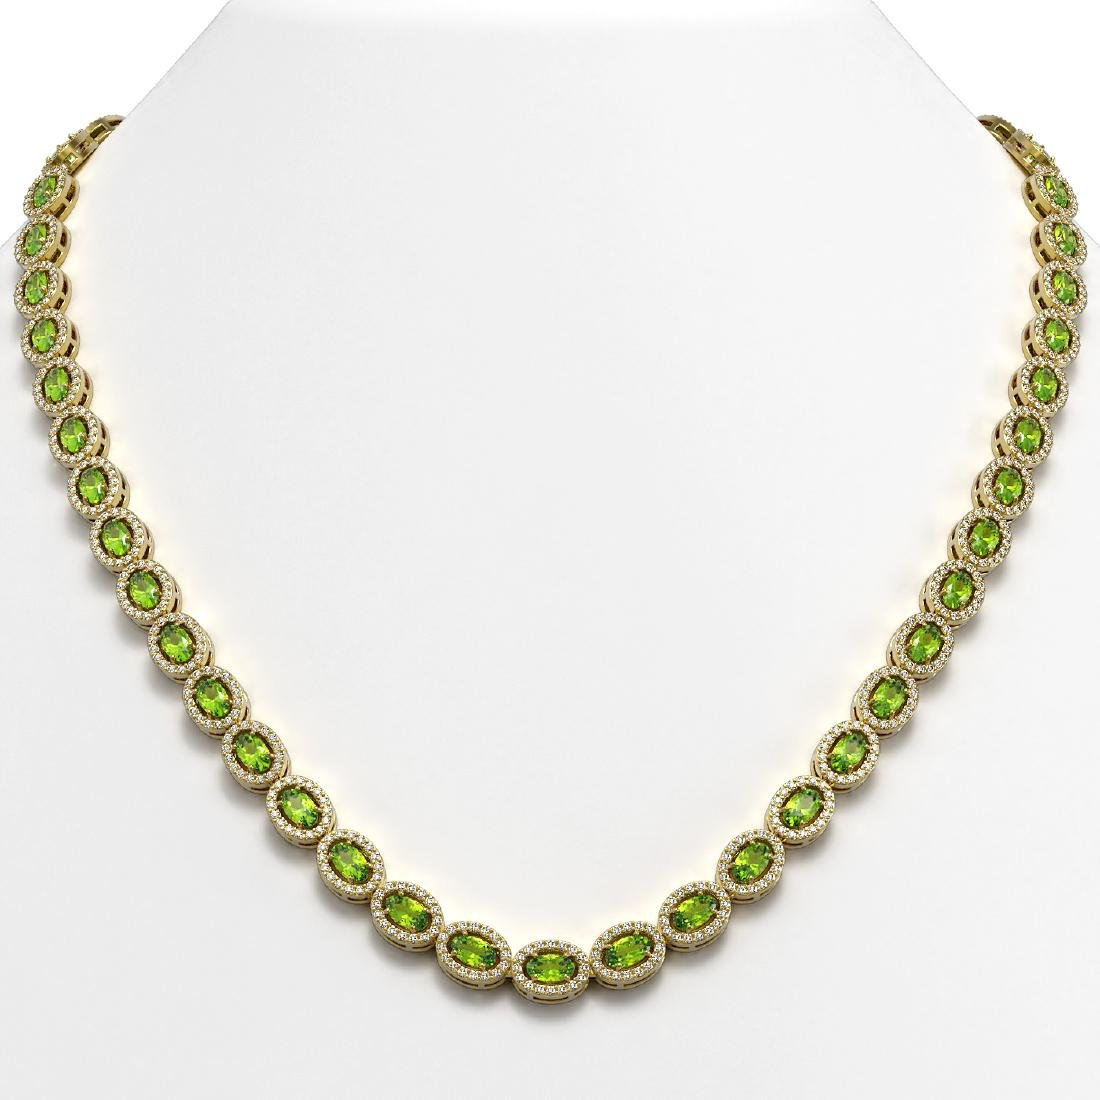 23.86 CTW Peridot & Diamond Halo Necklace 10K Yellow